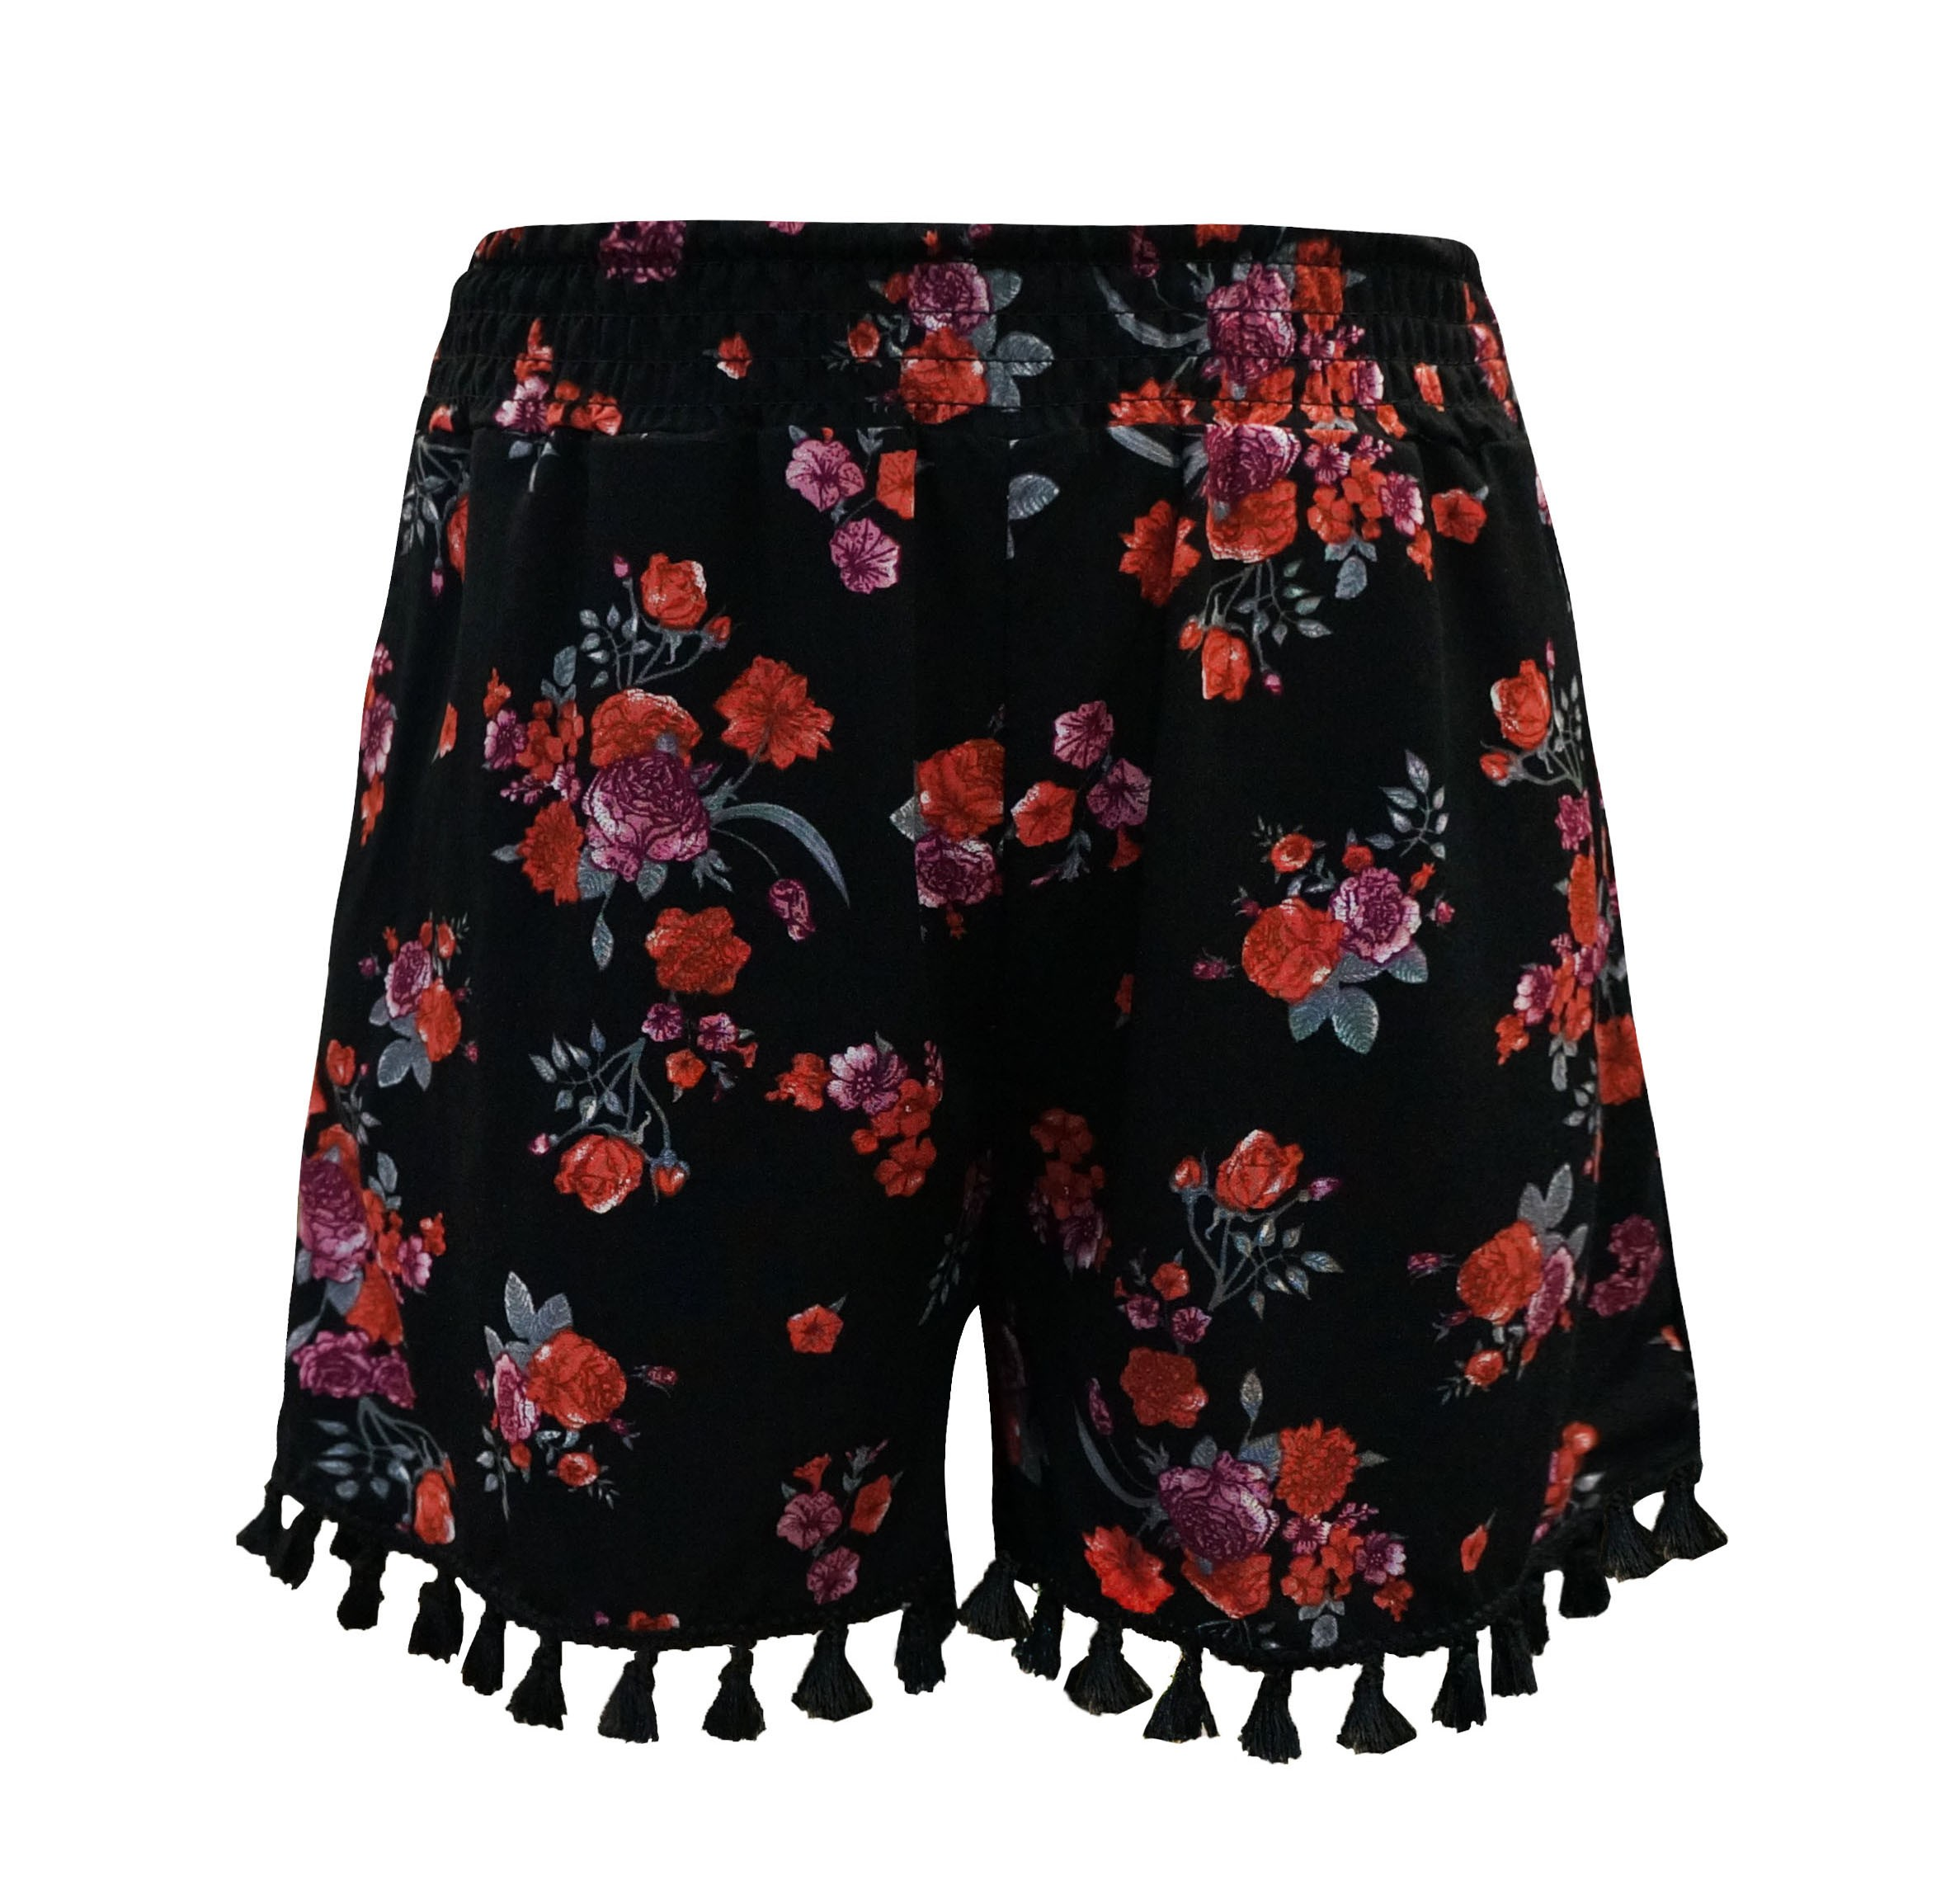 KIDS BLACK/GREY/CORAL FLORAL PRINT SMOCKING WAIST SHORTS W/ TASSEL TRIM(4/5, 6/6X) #K8SH15-01